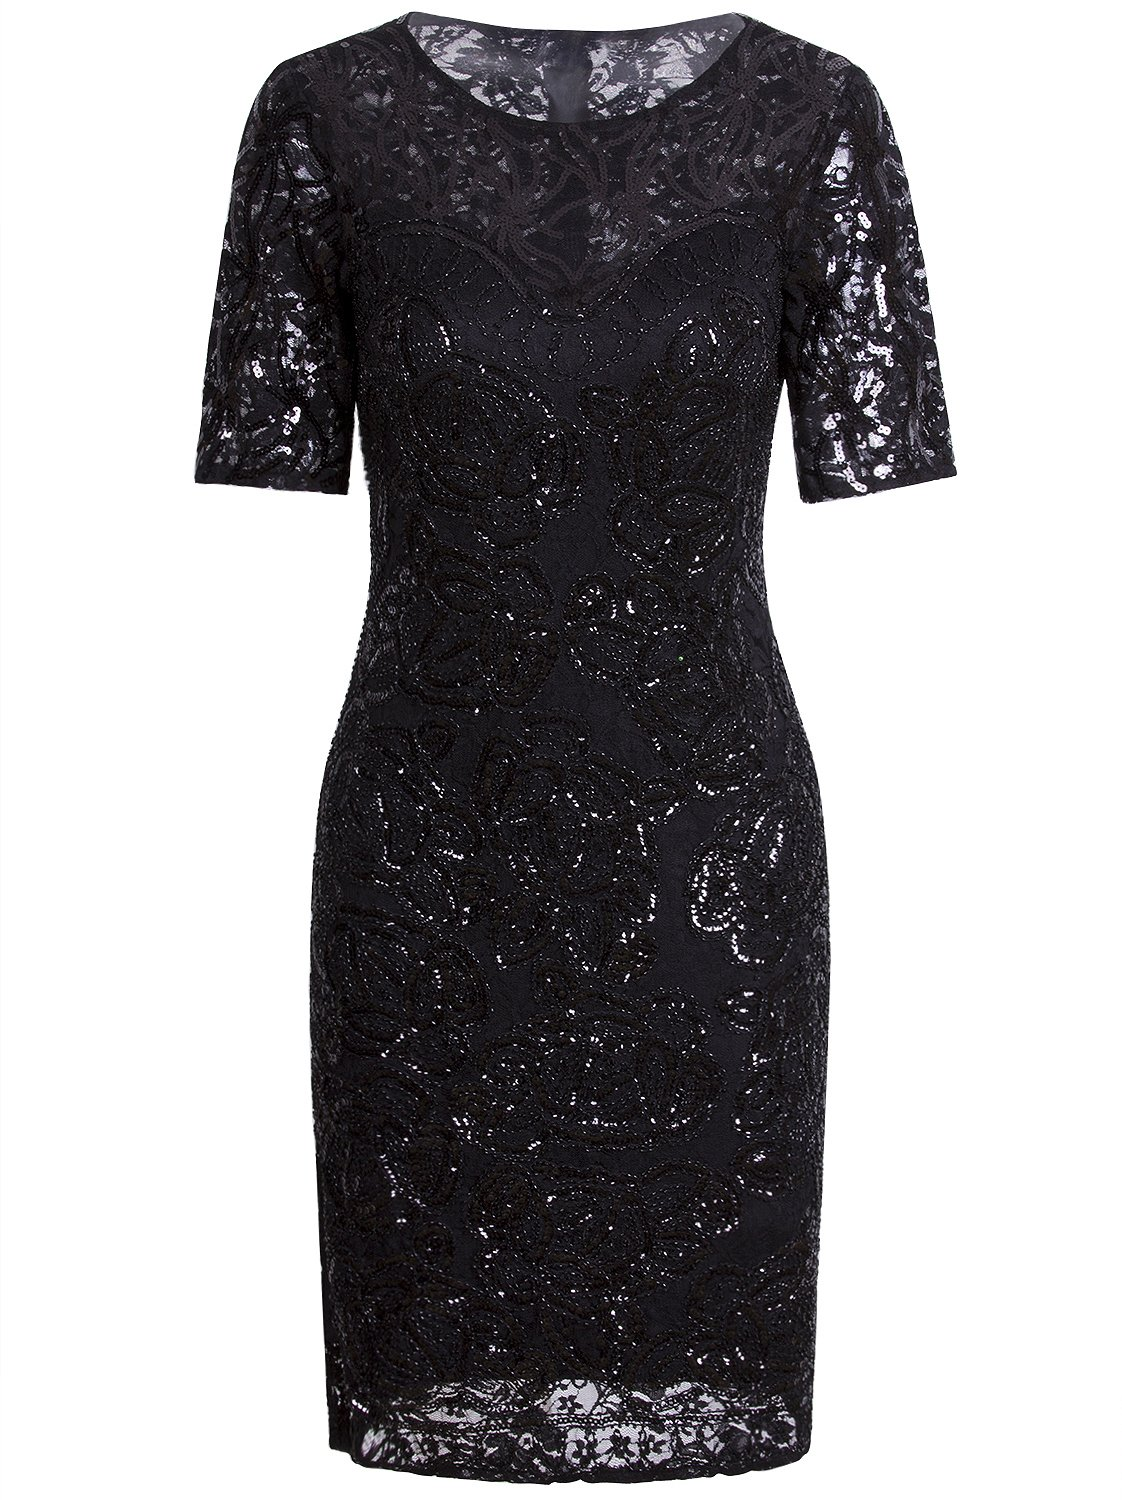 Vijiv Vintage 1920s Gatsby Sequin Beaded Lace Cocktail Party Flapper Dress With Sleeves,X-Large,Black